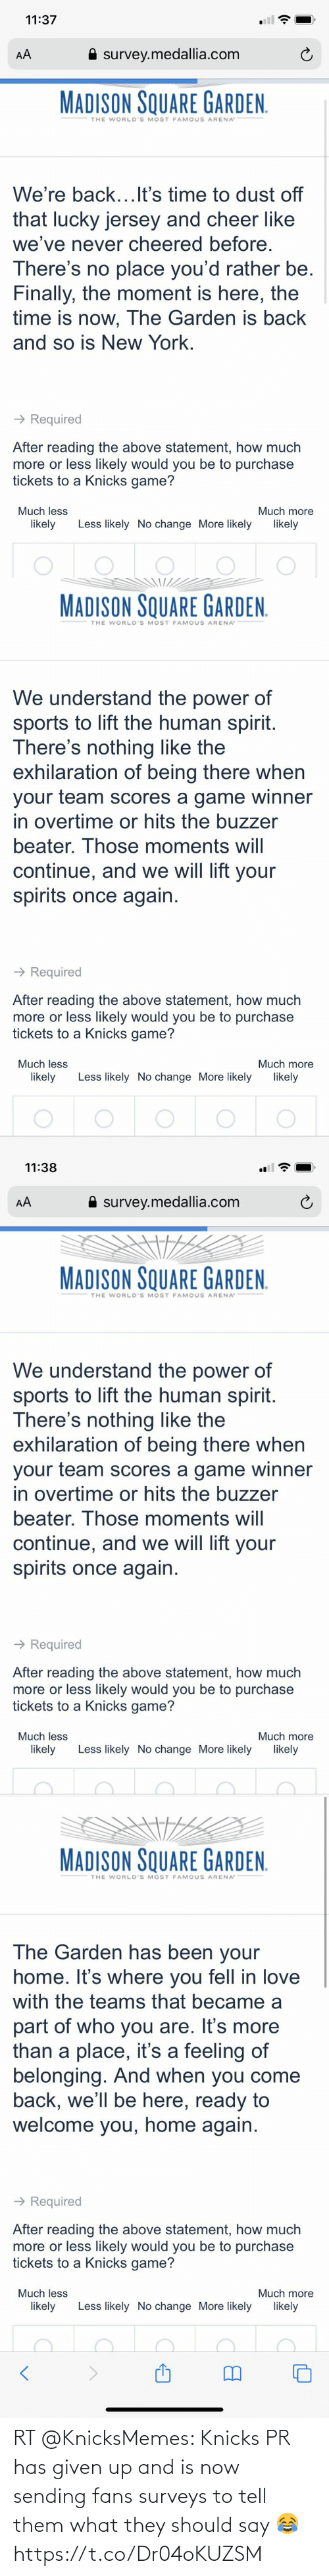 New York Knicks, New York Knicks, and Them: RT @KnicksMemes: Knicks PR has given up and is now sending fans surveys to tell them what they should say 😂 https://t.co/Dr04oKUZSM